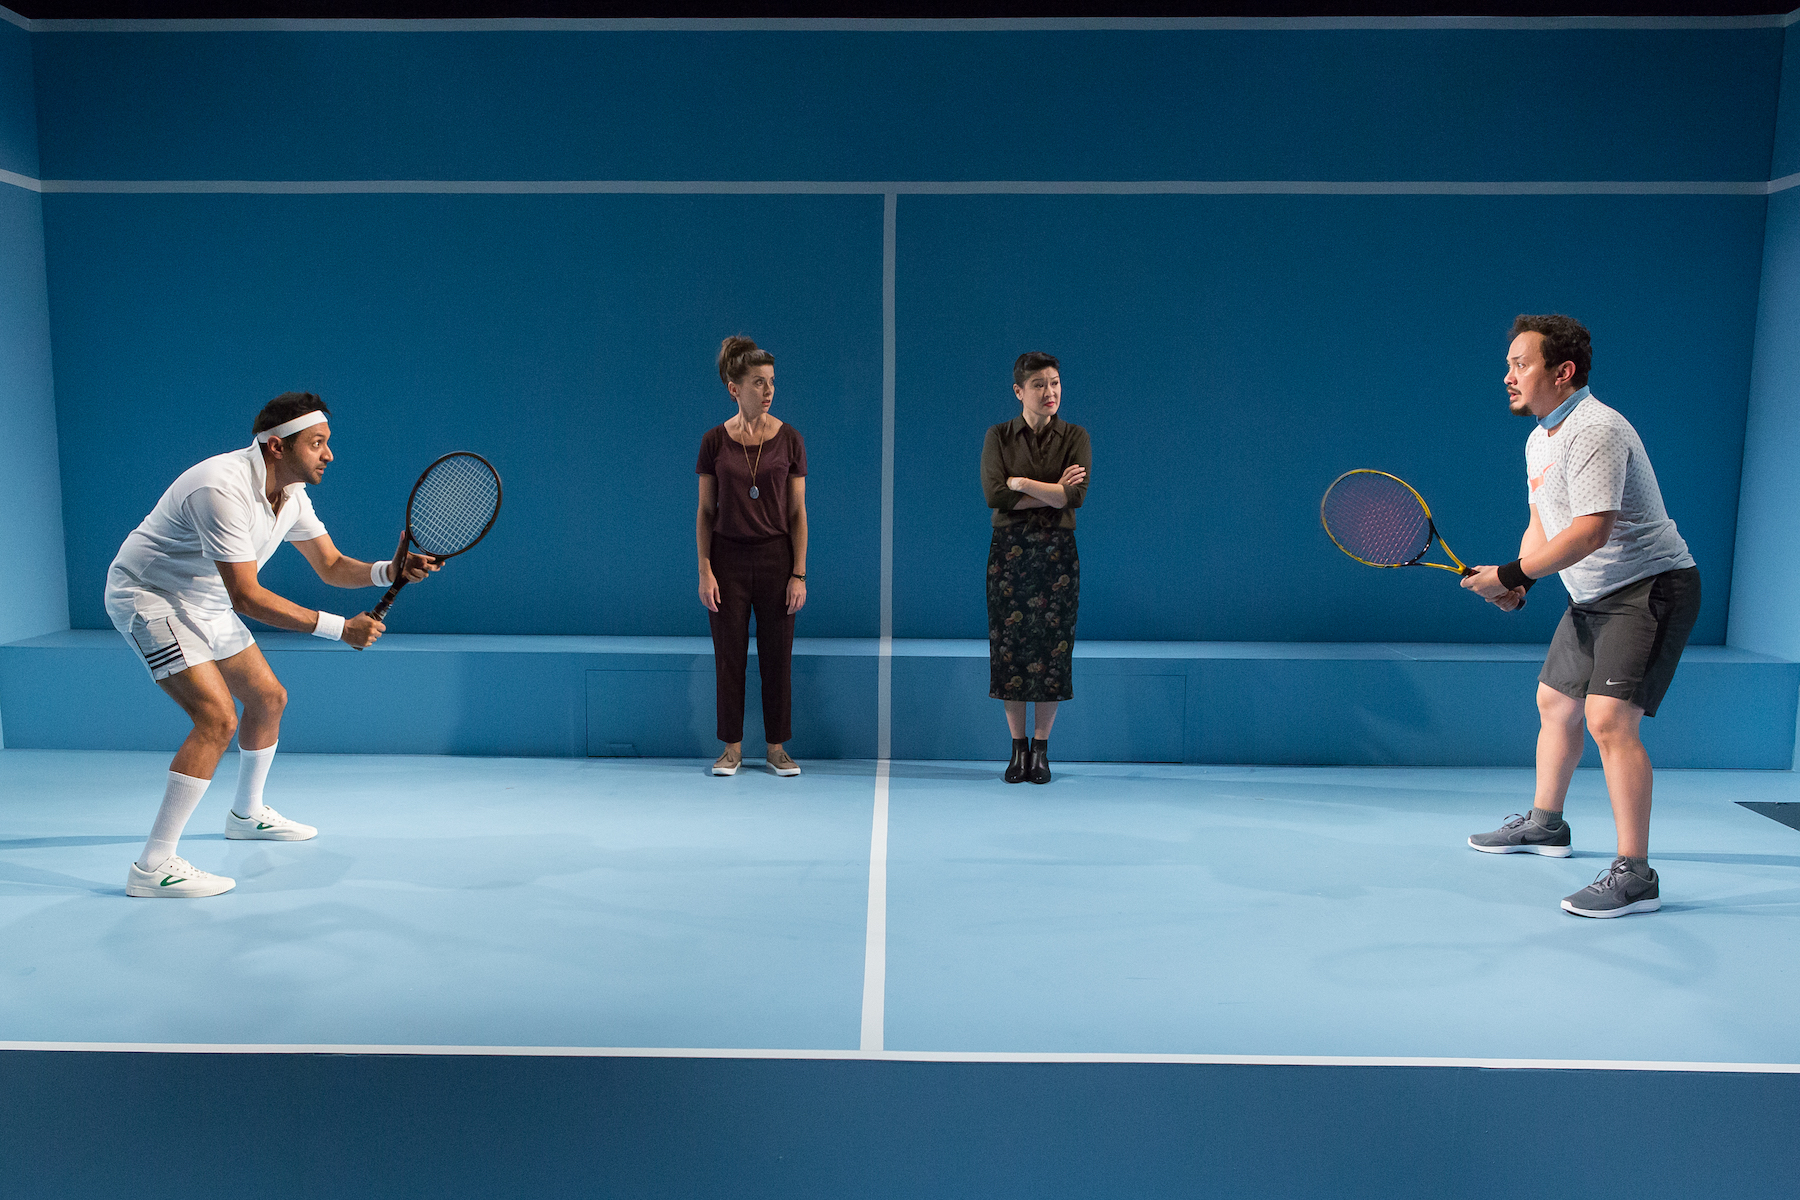 Don't You F**king Say a Word – Tennis Anyone?